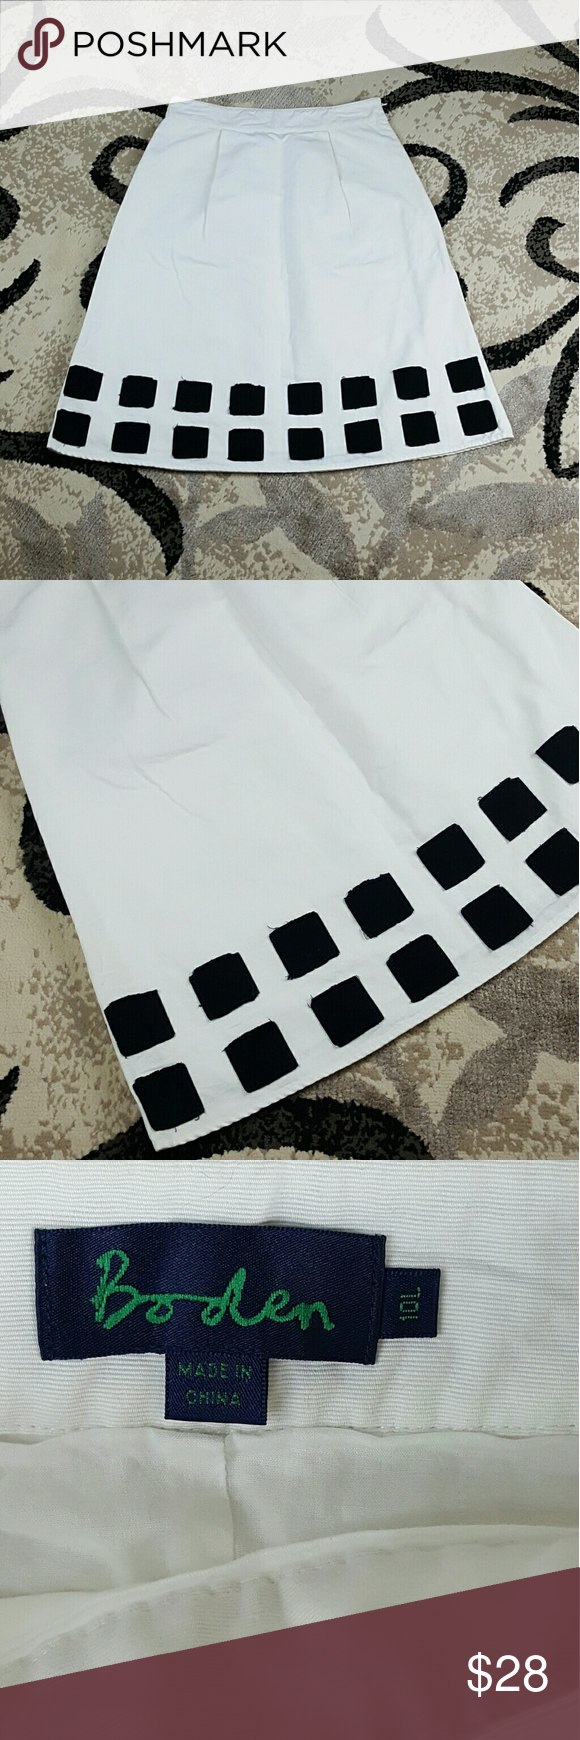 Boden White Below Knee Square Patch Skirt Boden White Below Knee Square Patch Skirt  Size - 10L  Super cute  Perfect for the summer  Great Pre-Loved condition  No rips or stains  Zipper side Boden Skirts Midi